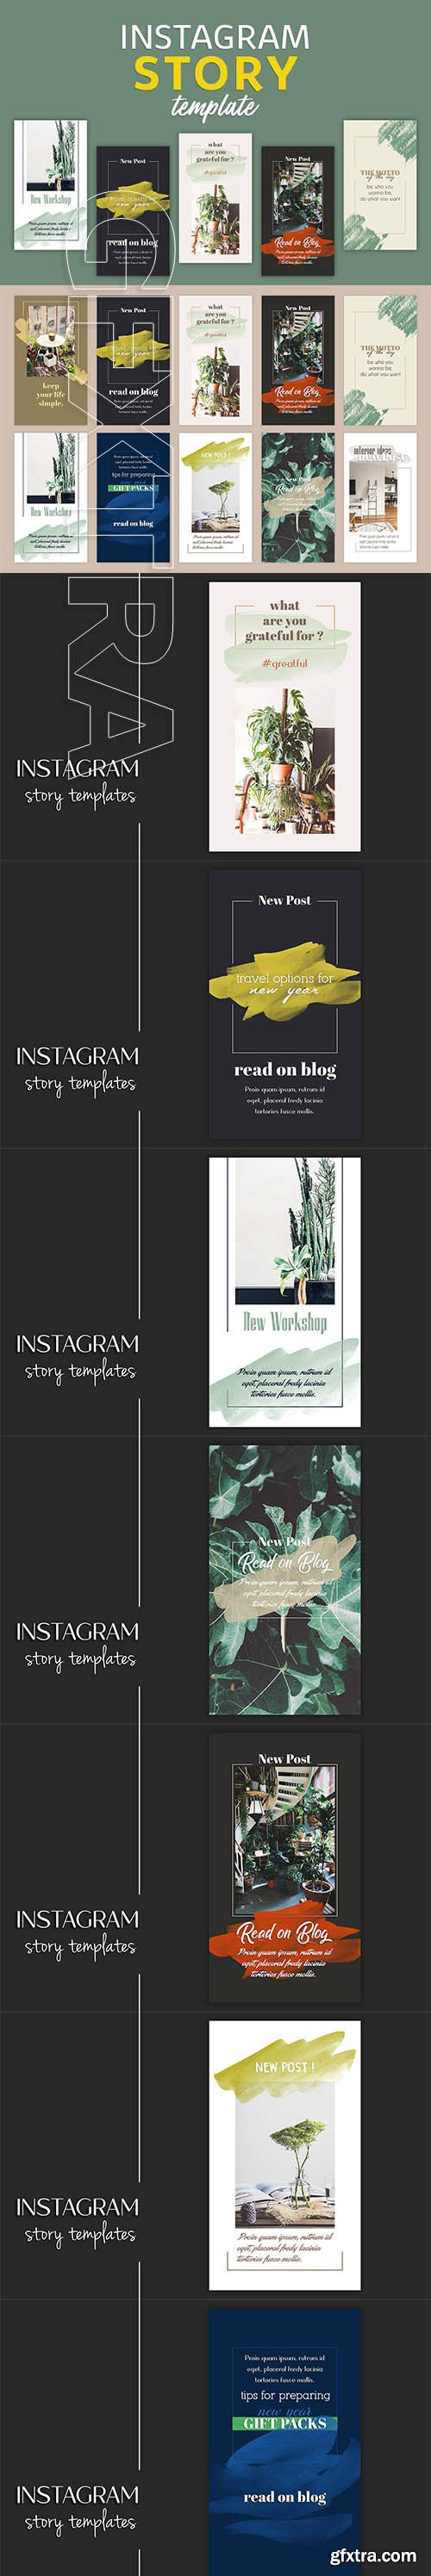 CreativeMarket - Instagram Story Templates 3266977